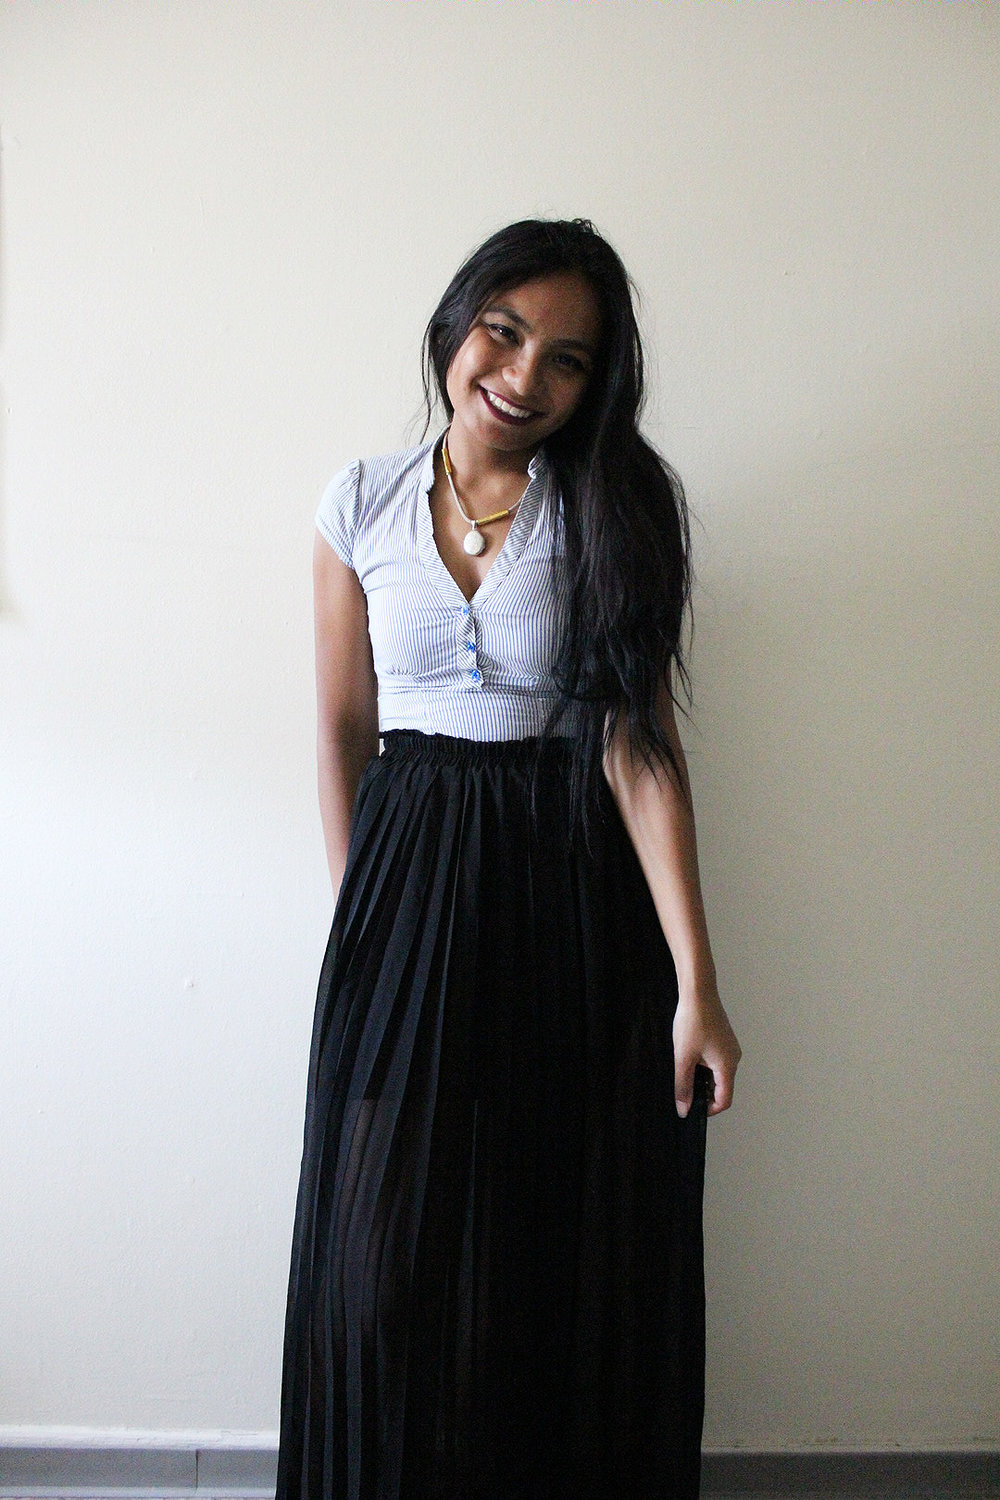 Maxi-Skirt-Button-Down-Work-Appropriate-Office-Wear-Style-Blogger-Fashionista-LINDATENCHITRAN-3-1616x1080.jpg